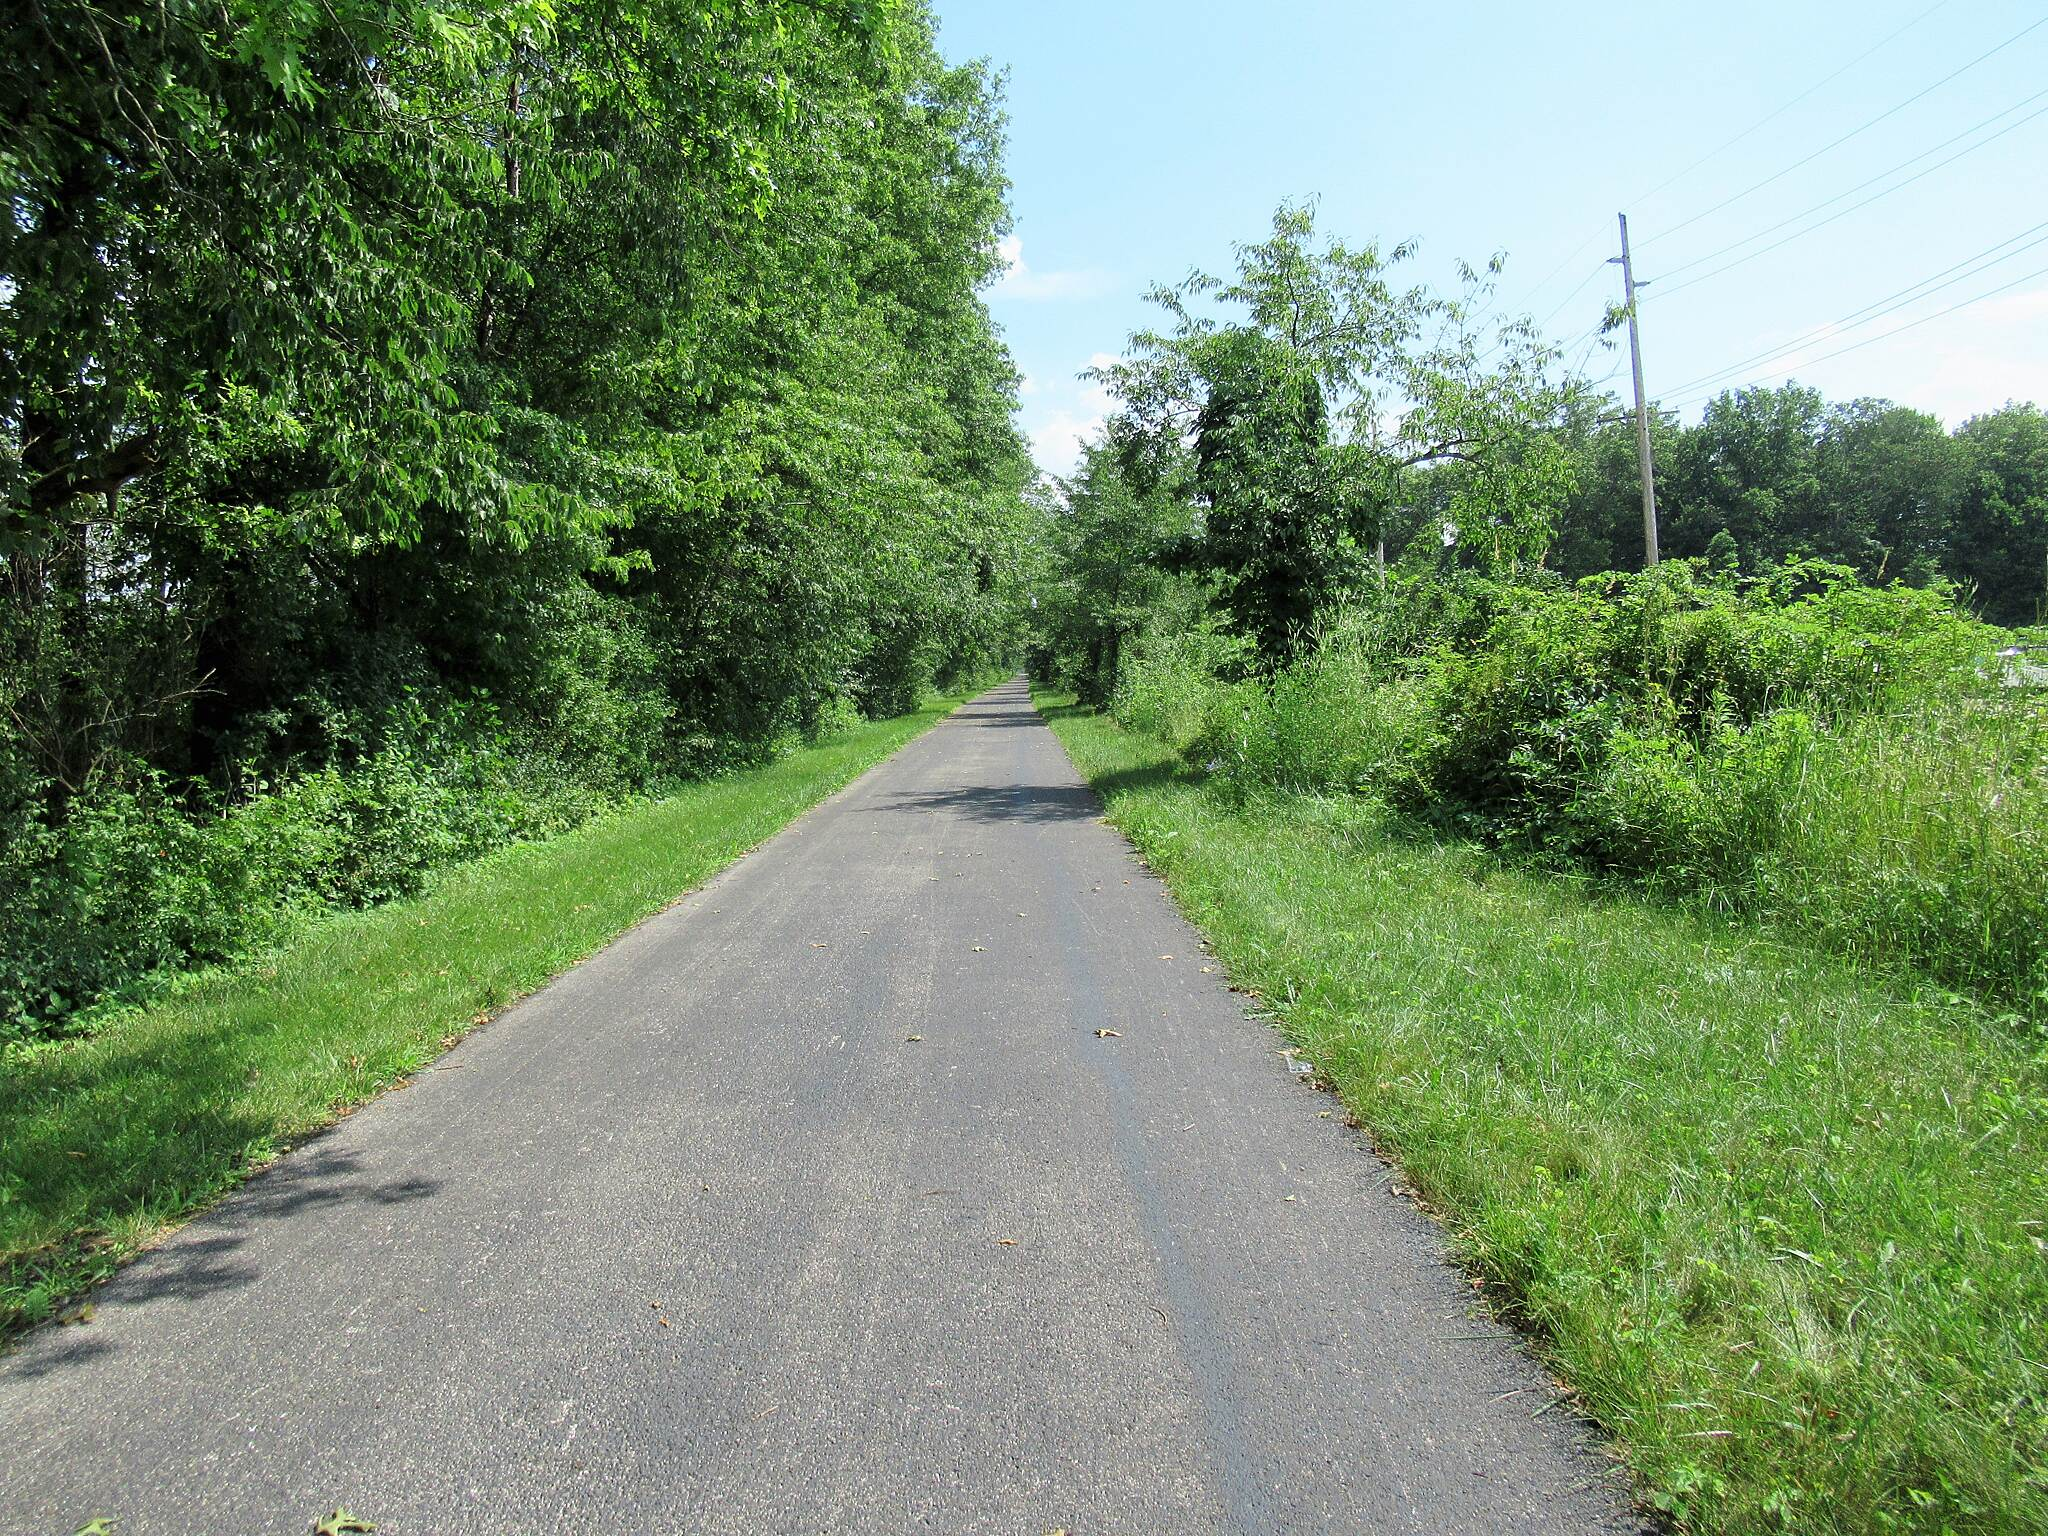 Western Reserve Greenway Heading South from Orwell Just South of Orwell. July, 2019.